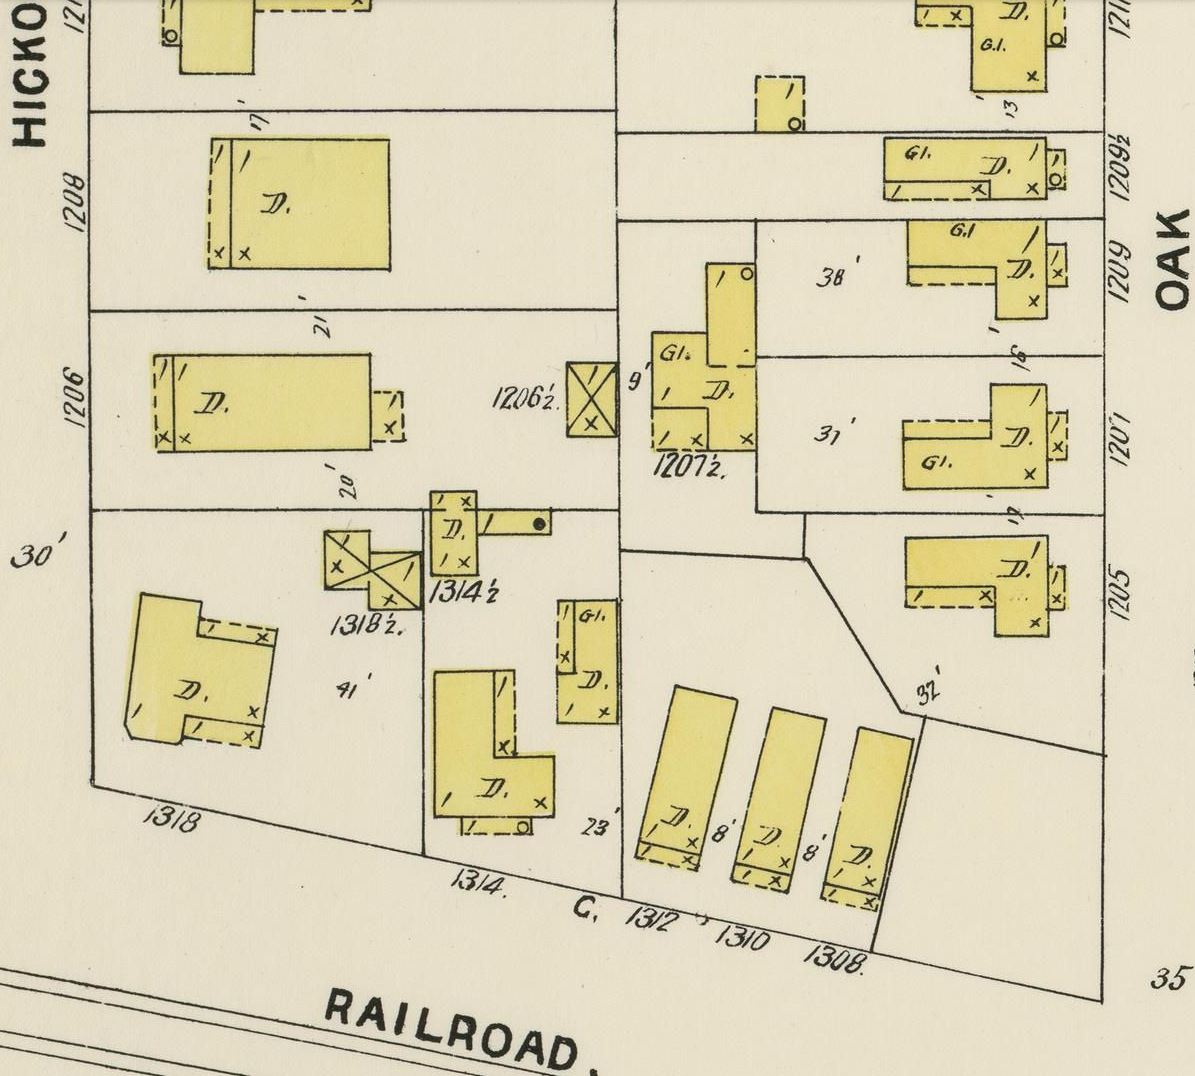 also this section of the map looks about the same on the 1924 sanborn map at least as far as 1314 railroad is concerned